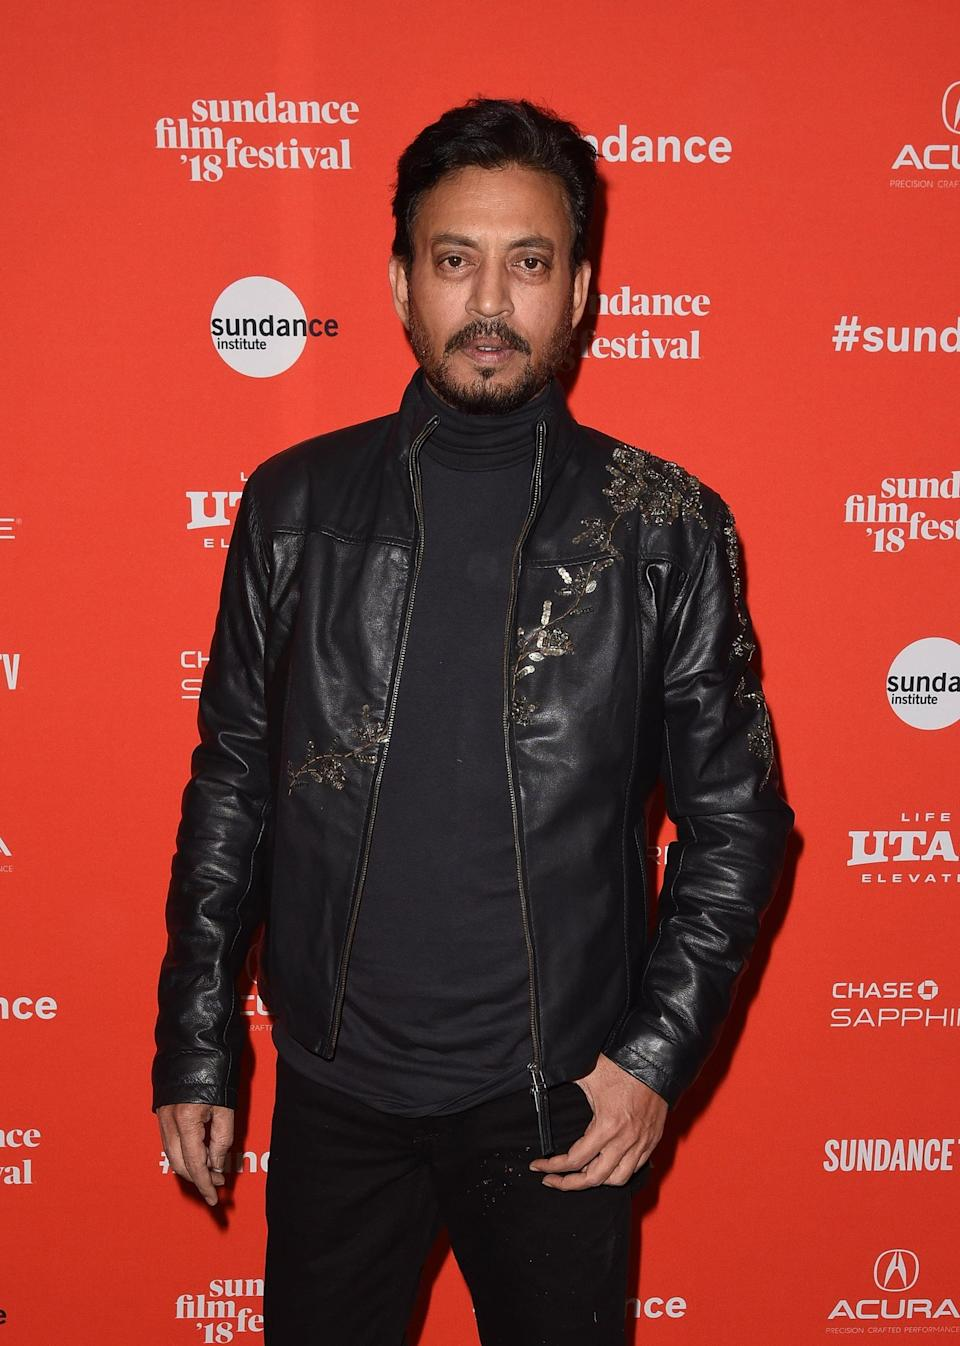 <p>The Bollywood actor and <strong>Slumdog Millionaire</strong> star <span>died on April 29 after being admitted to the hospital with a colon infection</span>. The news came two years after he was diagnosed with a rare form of cancer. He was 53. </p>